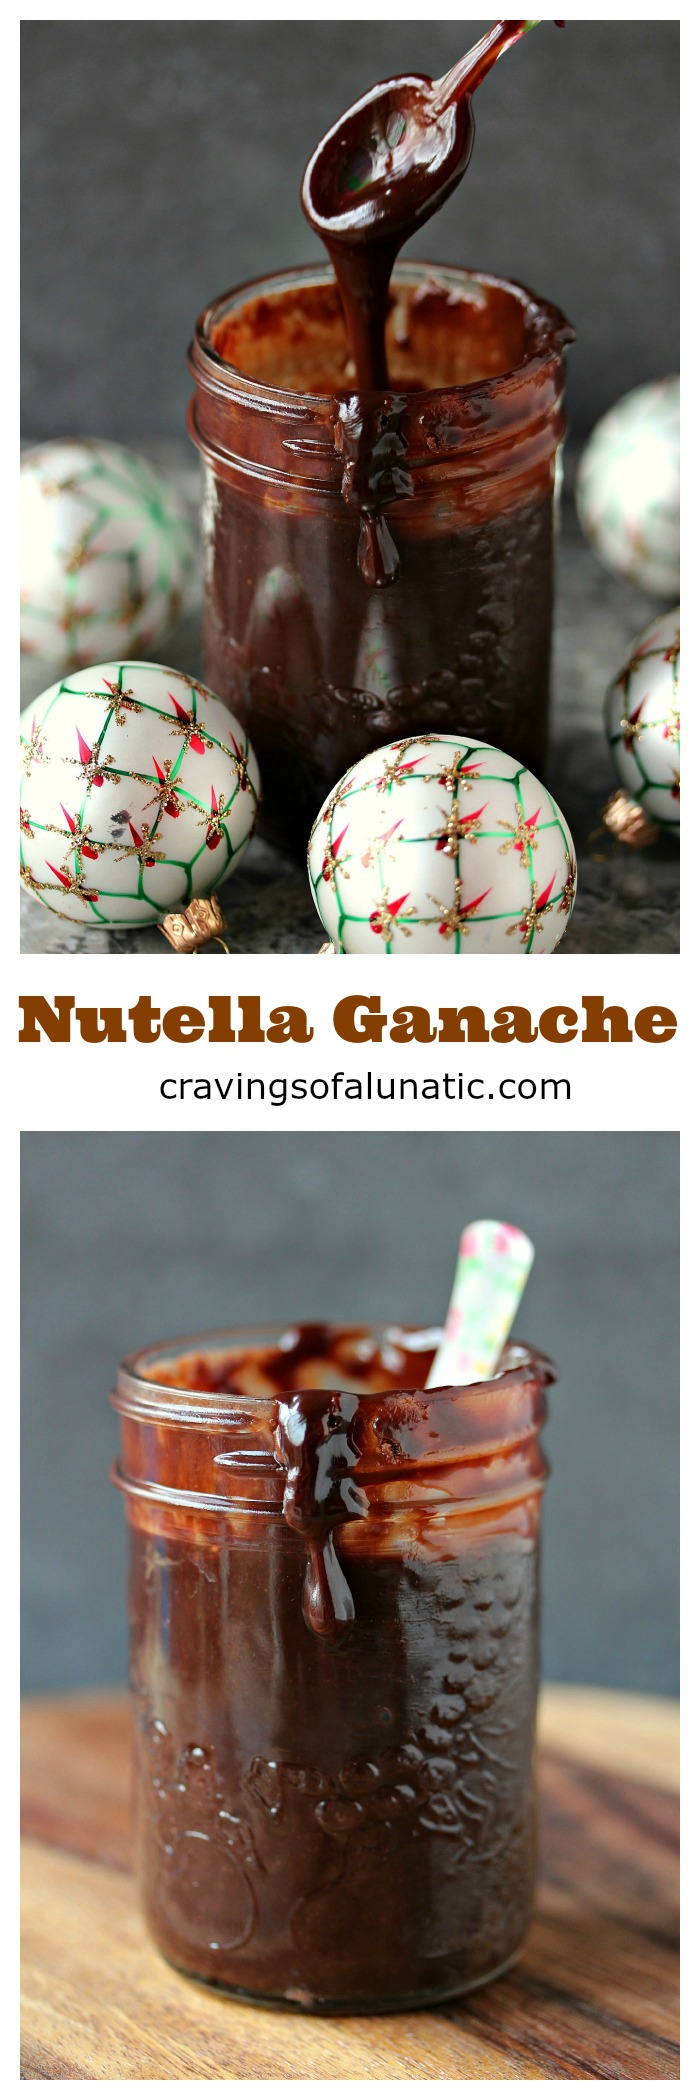 Nutella Ganache from cravingsofalunatic.com- There is nothing better than Nutella Ganache for topping sweets. I use it on topping cakes, cookie pizzas, ice cream, and even mini muffins. It's easy to make and utterly addictive! (@CravingsLunatic)